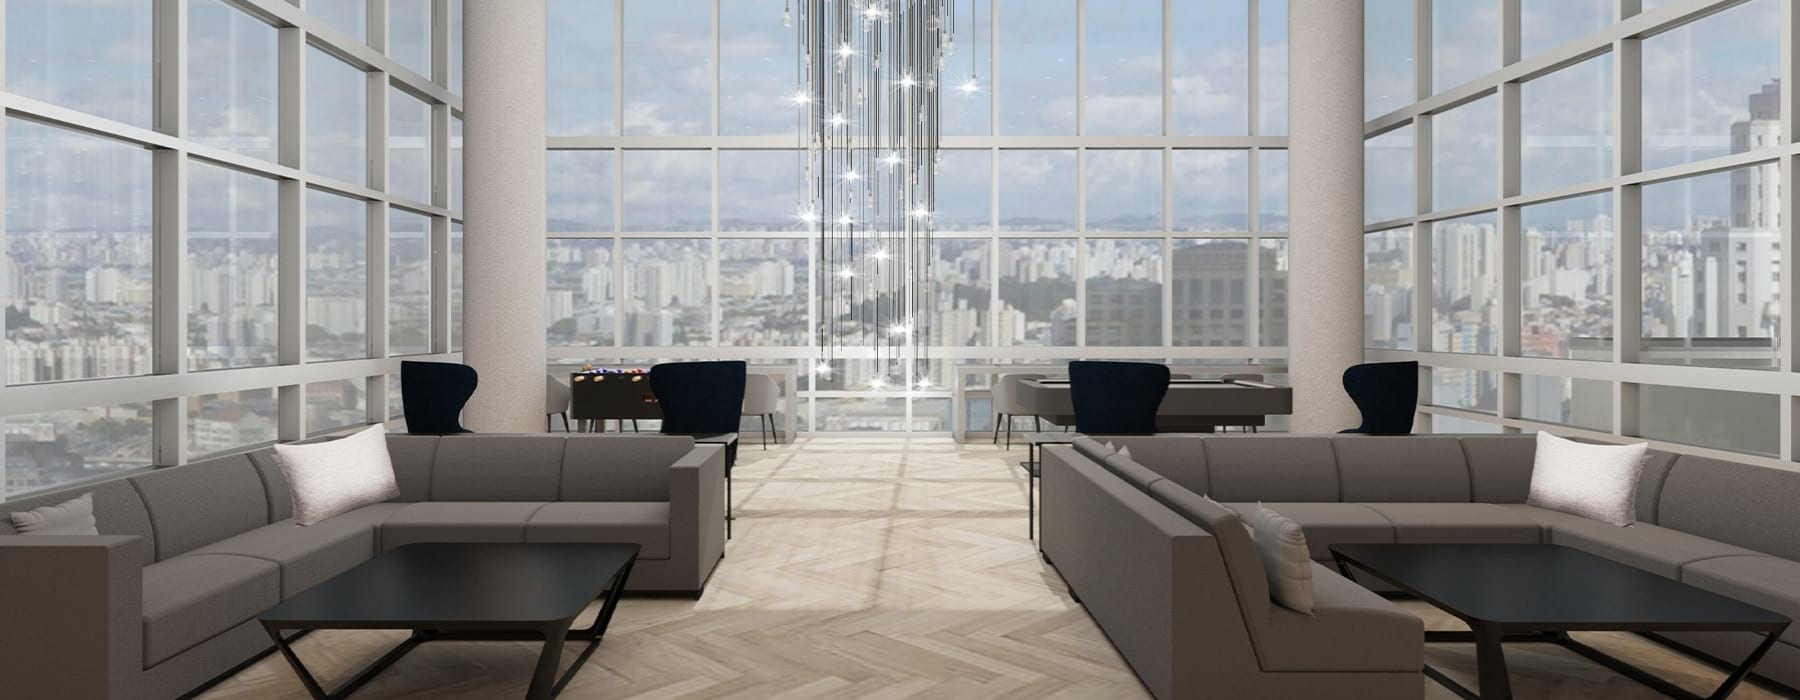 J Sol lobby space with wall-to-wall windows and lounge seating